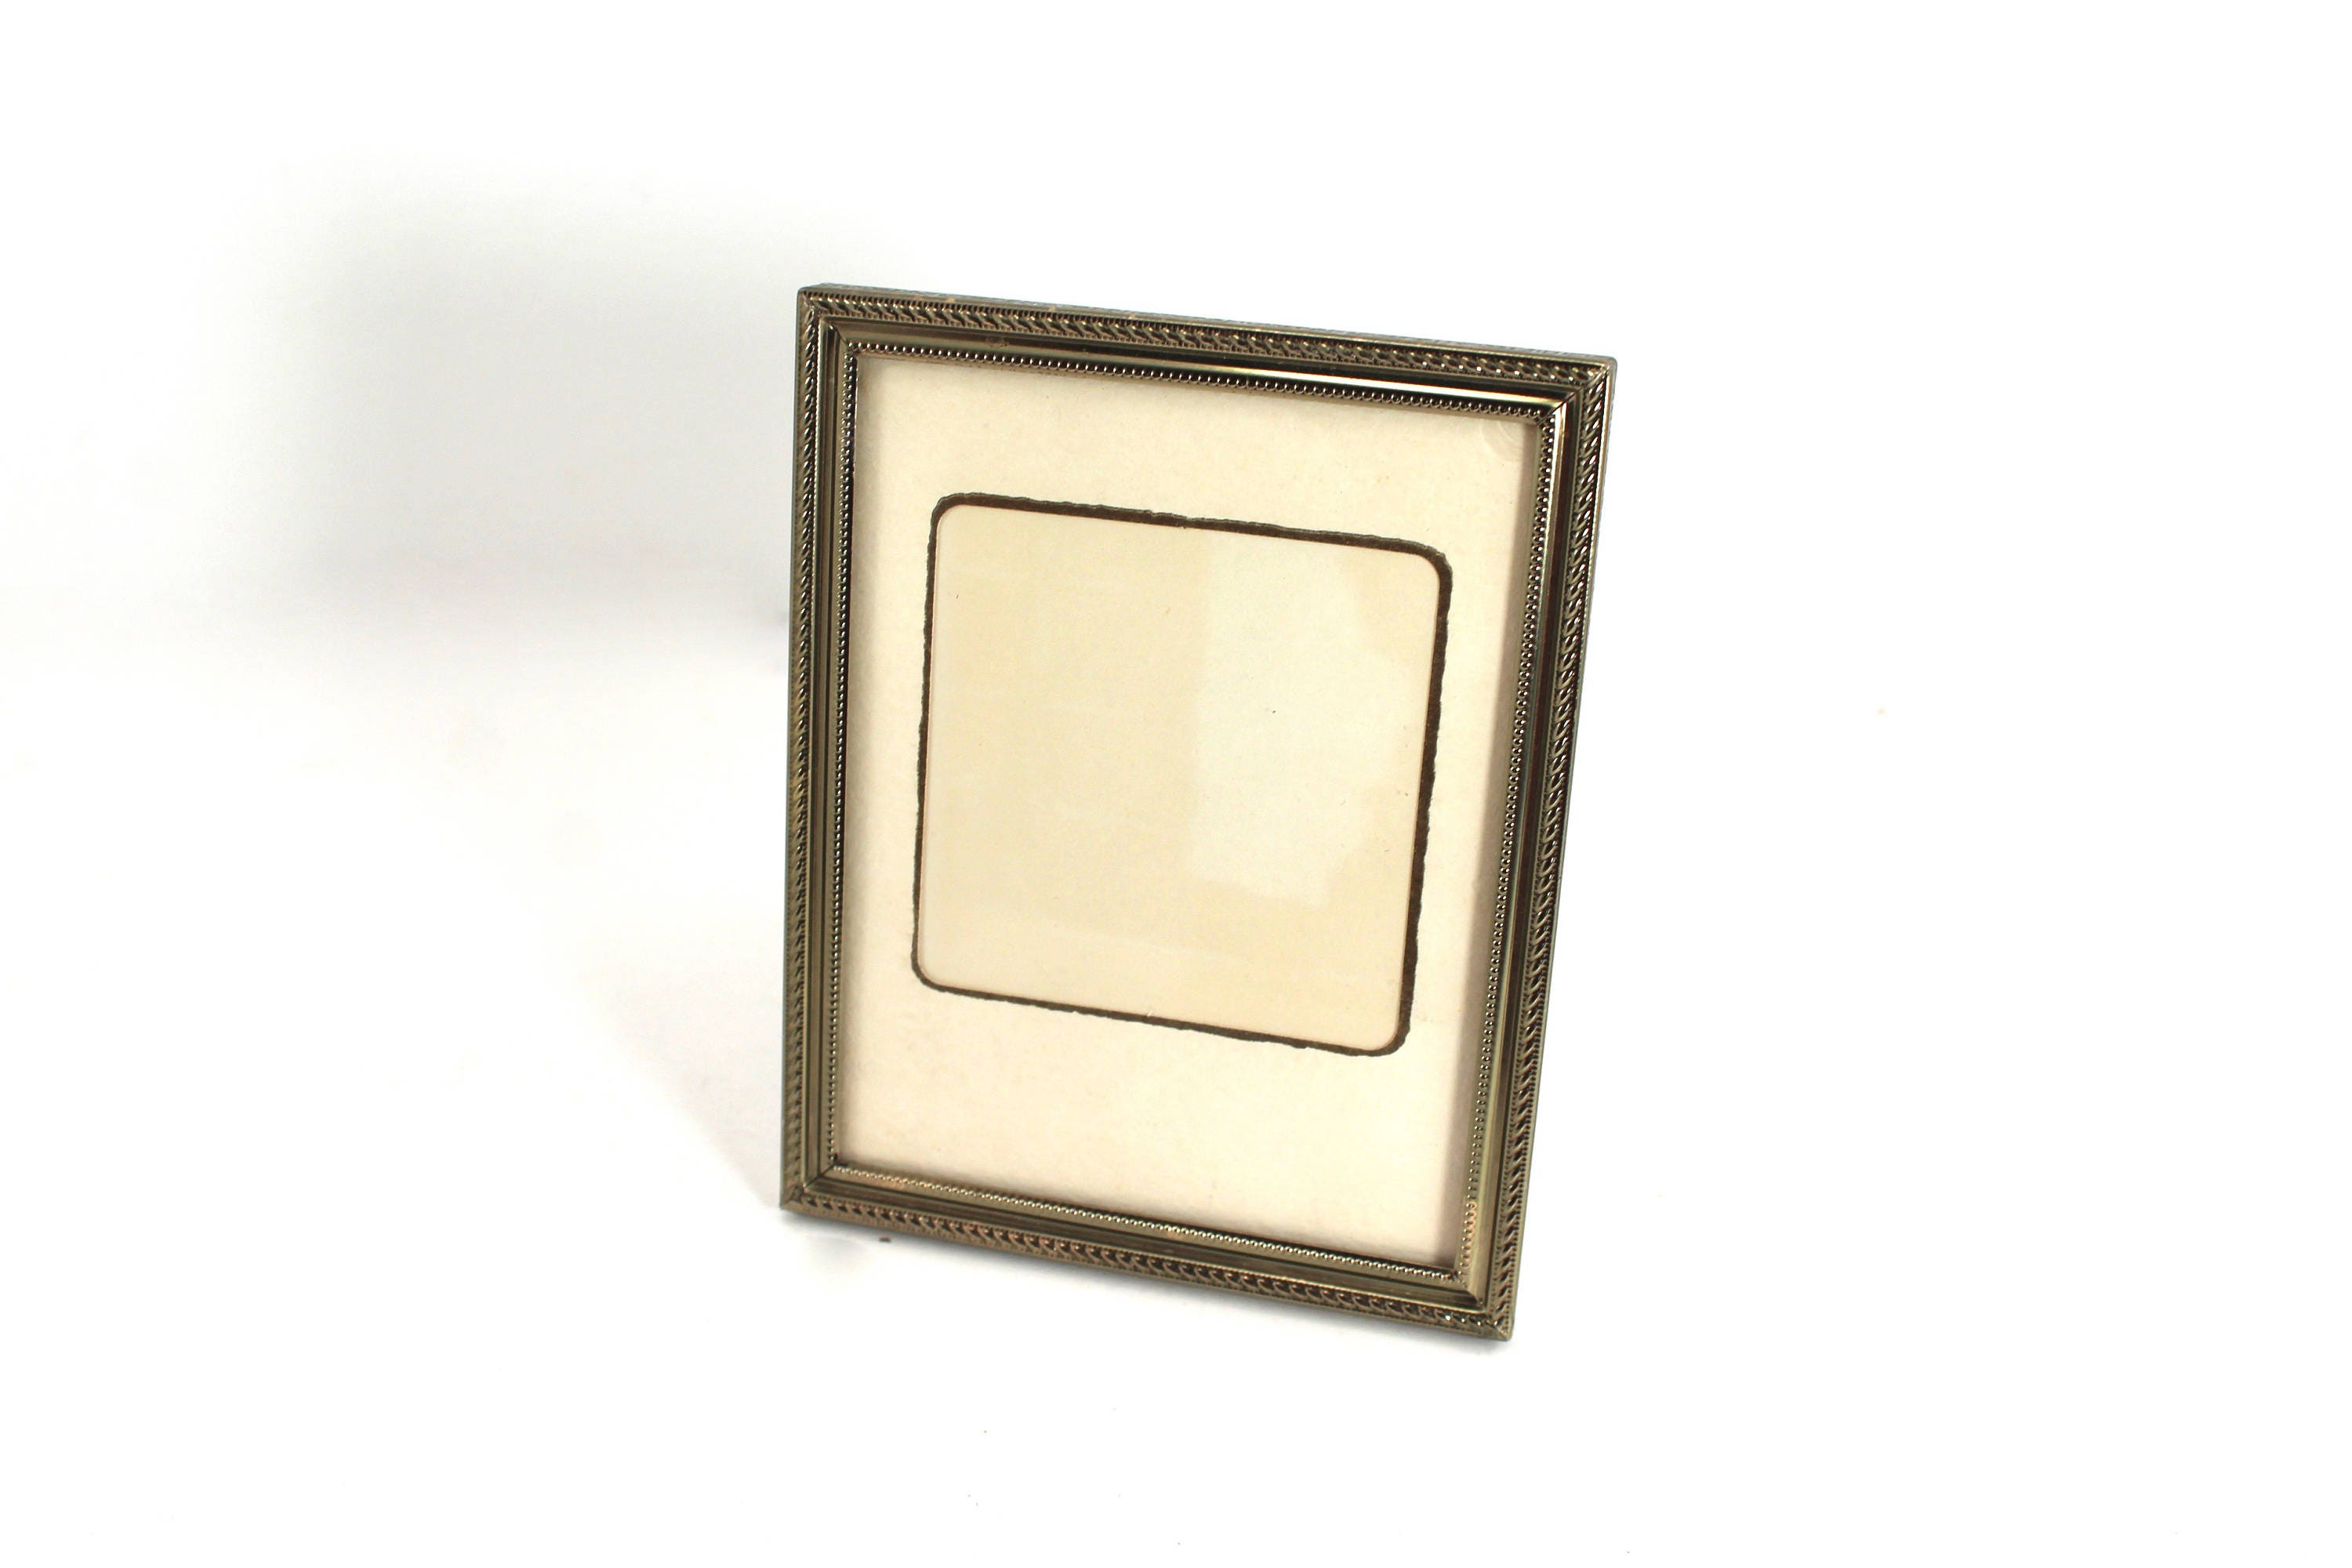 Vintage 3x4 Or 4x5 Picture Frame Gold Tone Metal With A